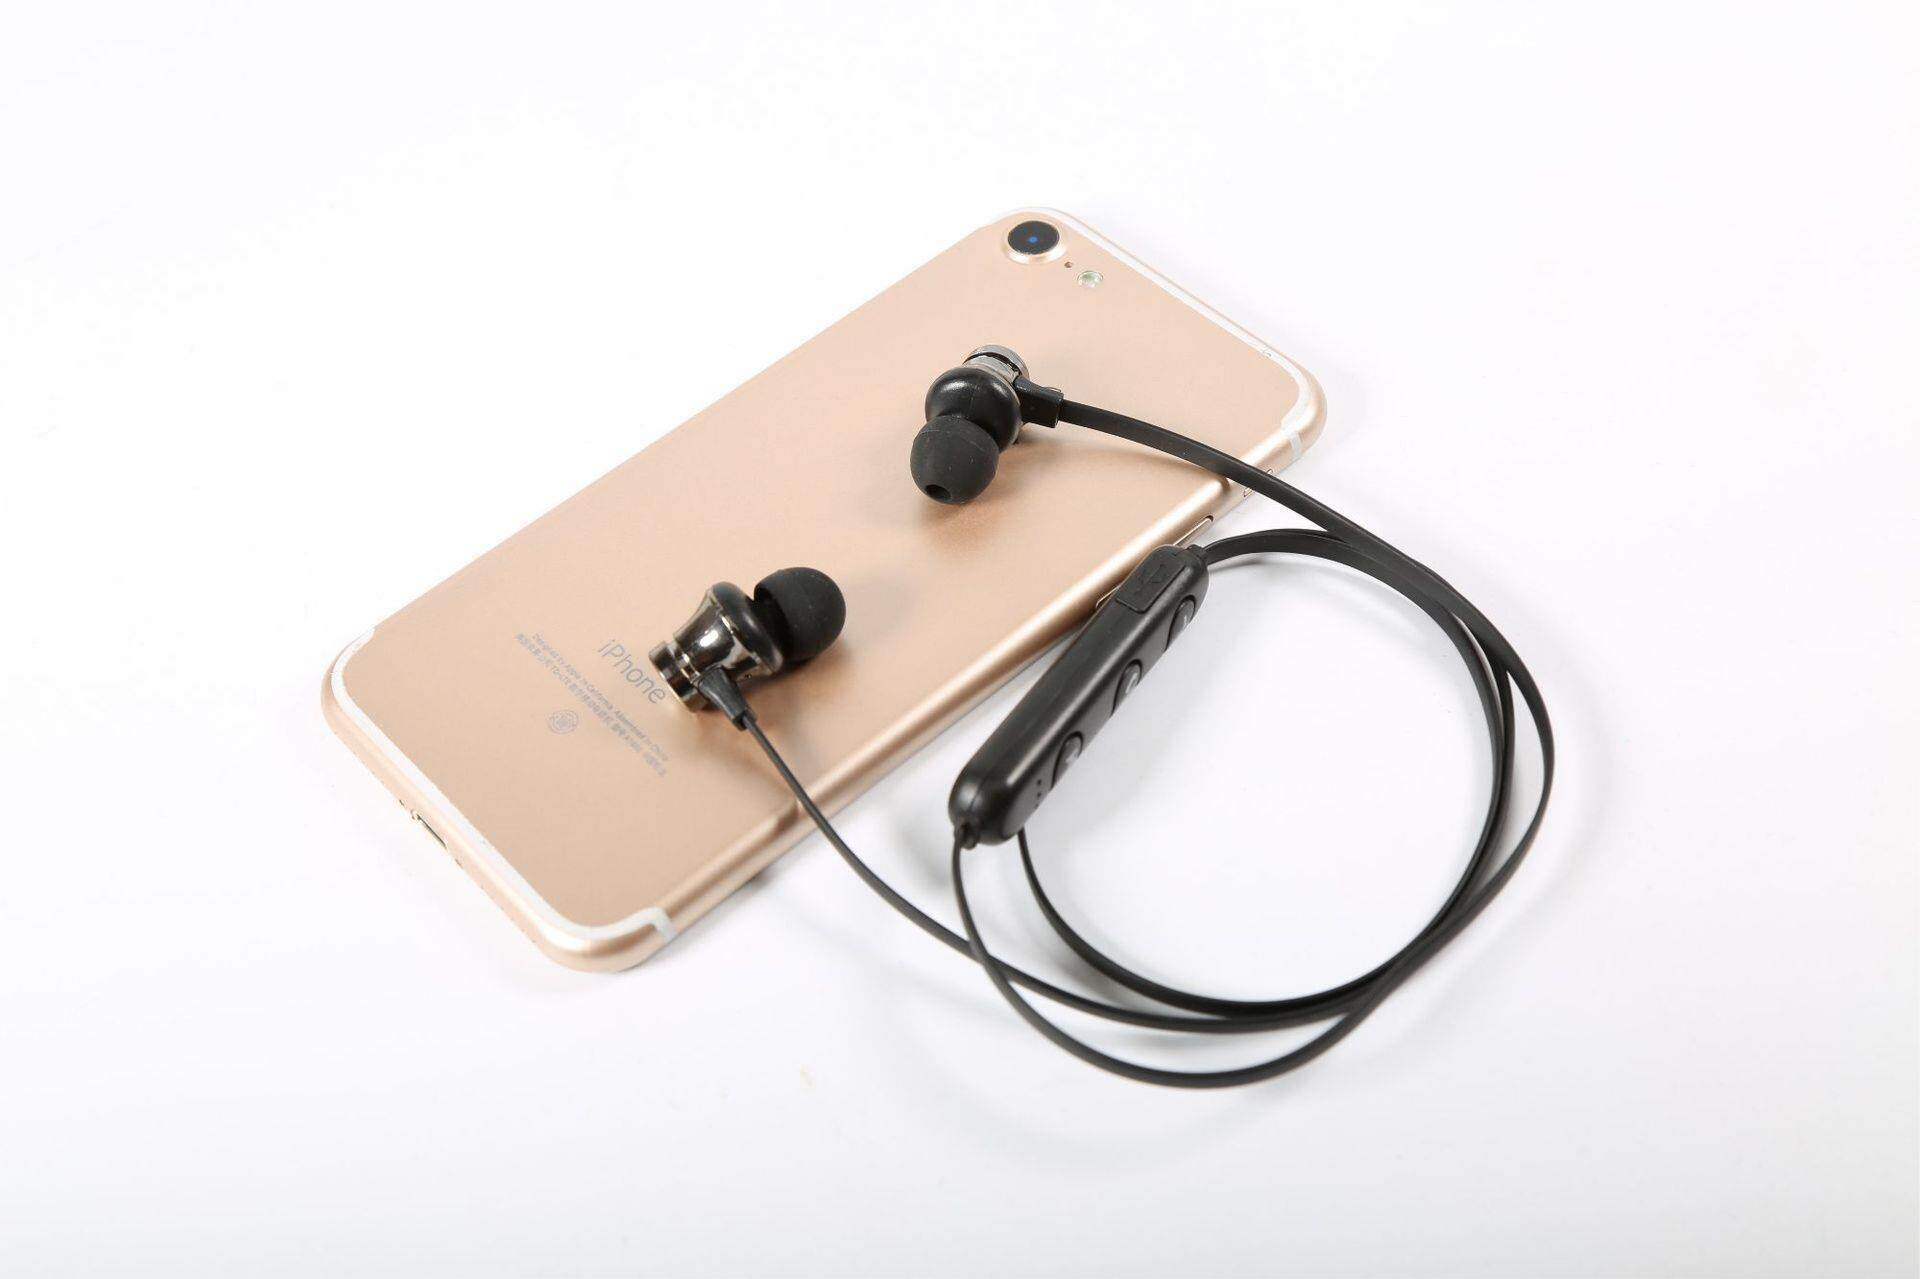 In Ear Headphone For Sale Headphones Prices Brands Specs Original Dacom Armor G06 Sport Ipx5 Waterproof Music Wireless Bluetooth Headset Earphone Magnetic Sports Stereo Bass Earpieces With Mic